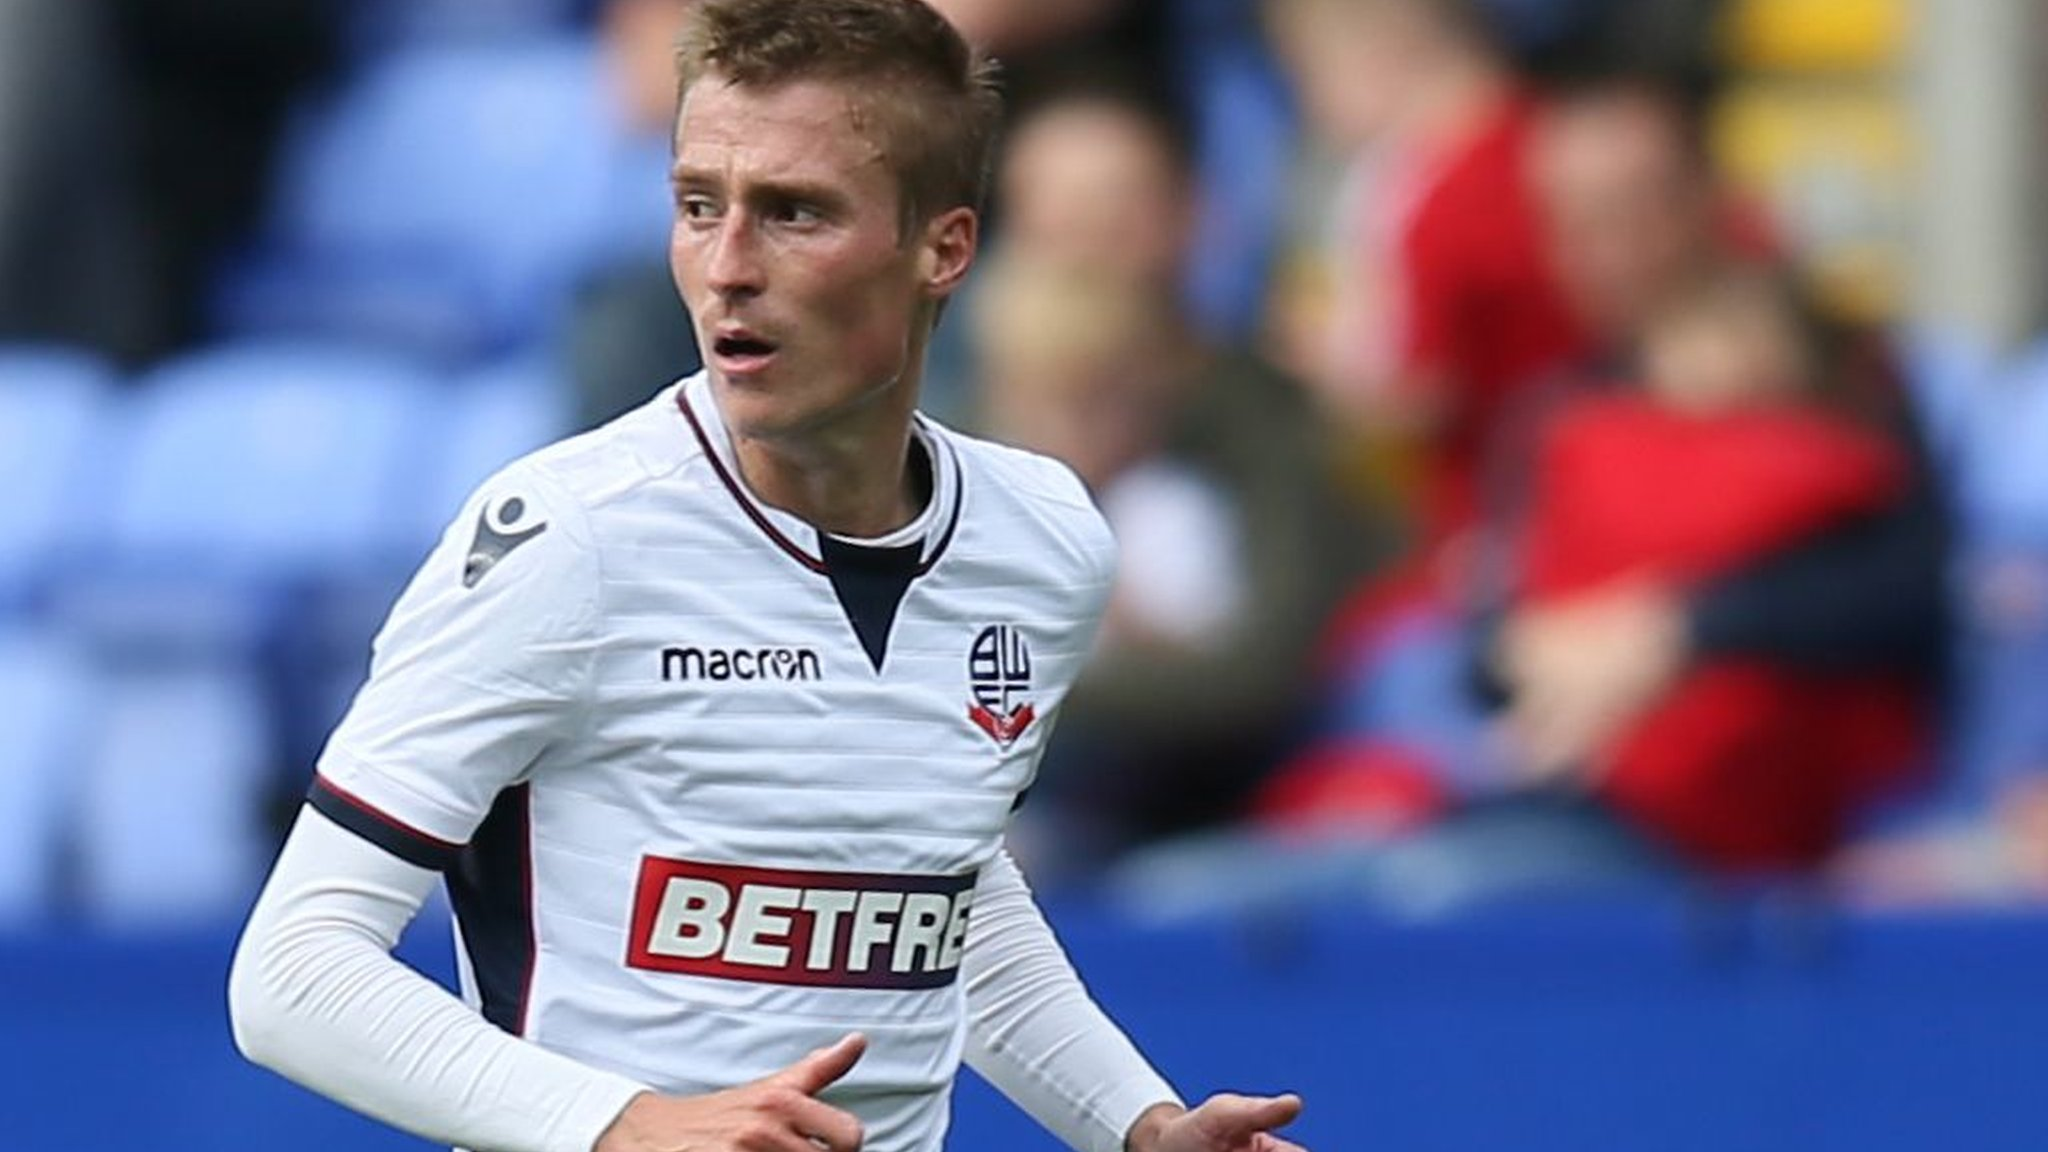 Bolton's ex-Liverpool defender Darby retires after motor neurone disease diagnosis